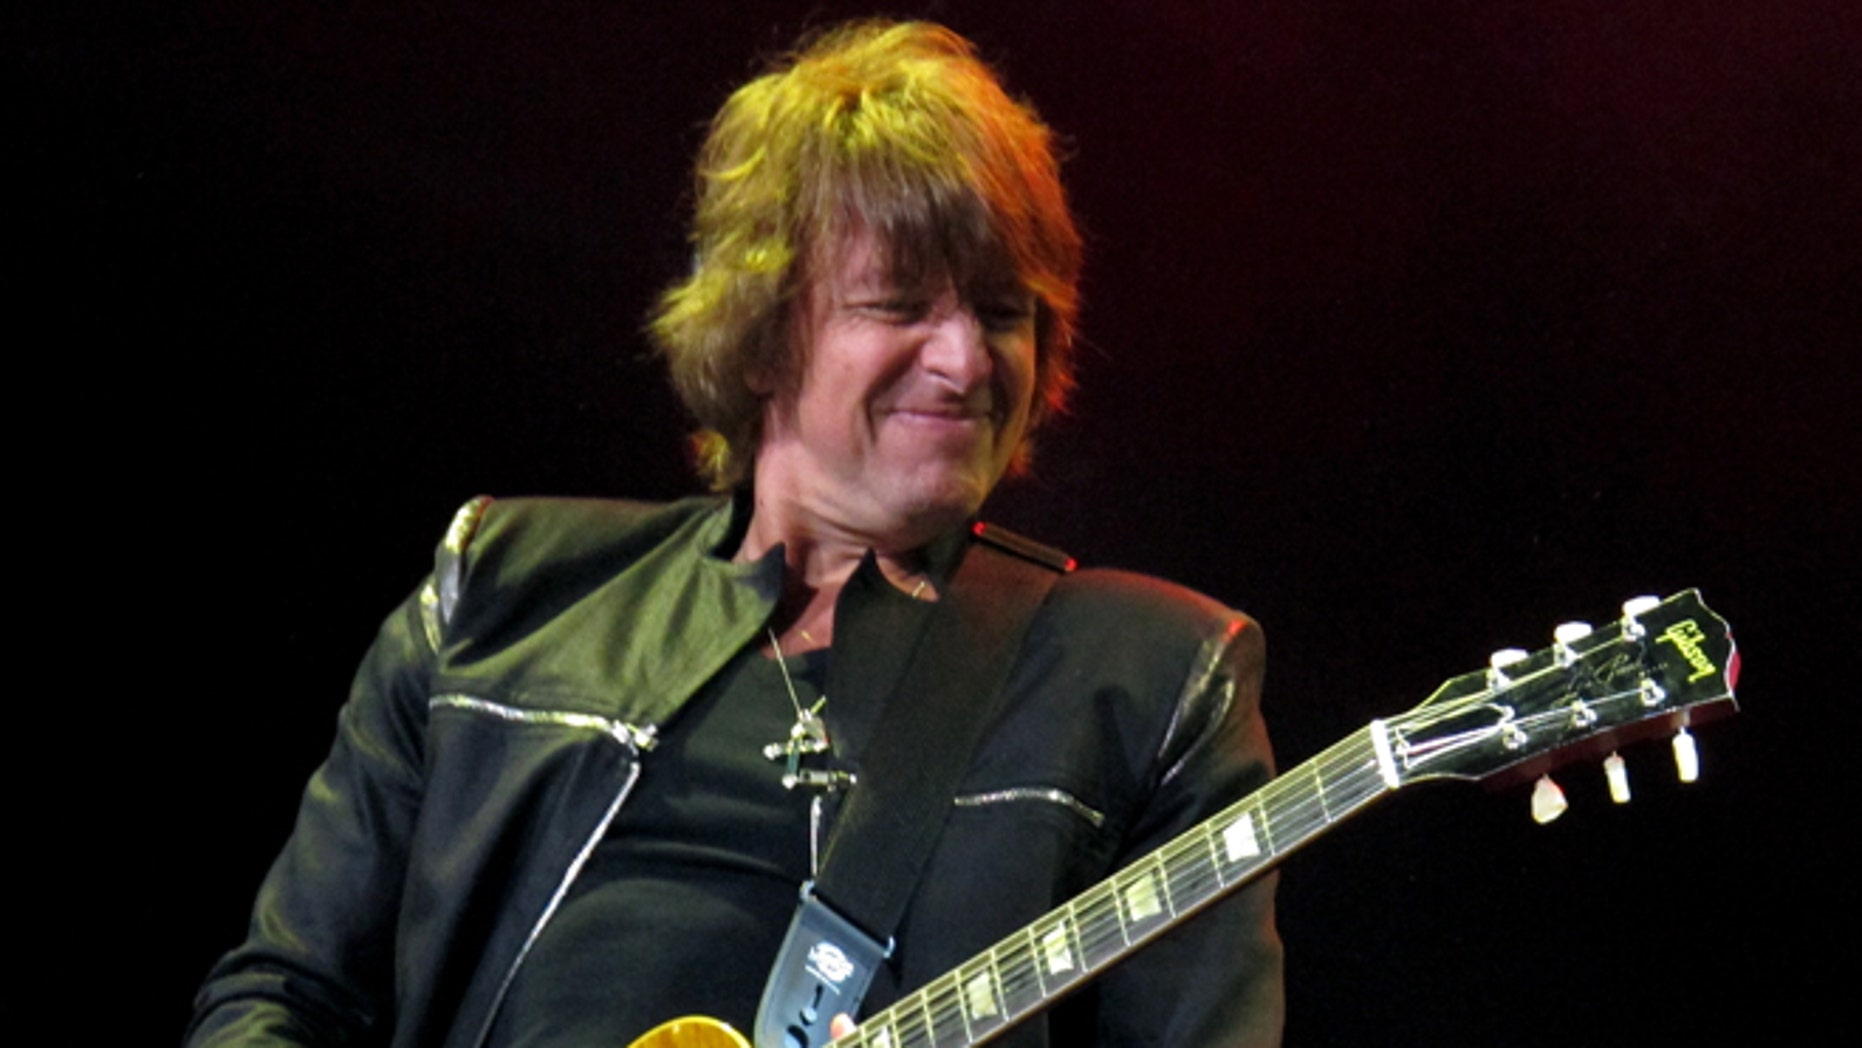 May 20, 2012: This file photo shows Bon Jovi guitarist Richie Sambora performing at the Bamboozle Festival in Asbury Park N.J.